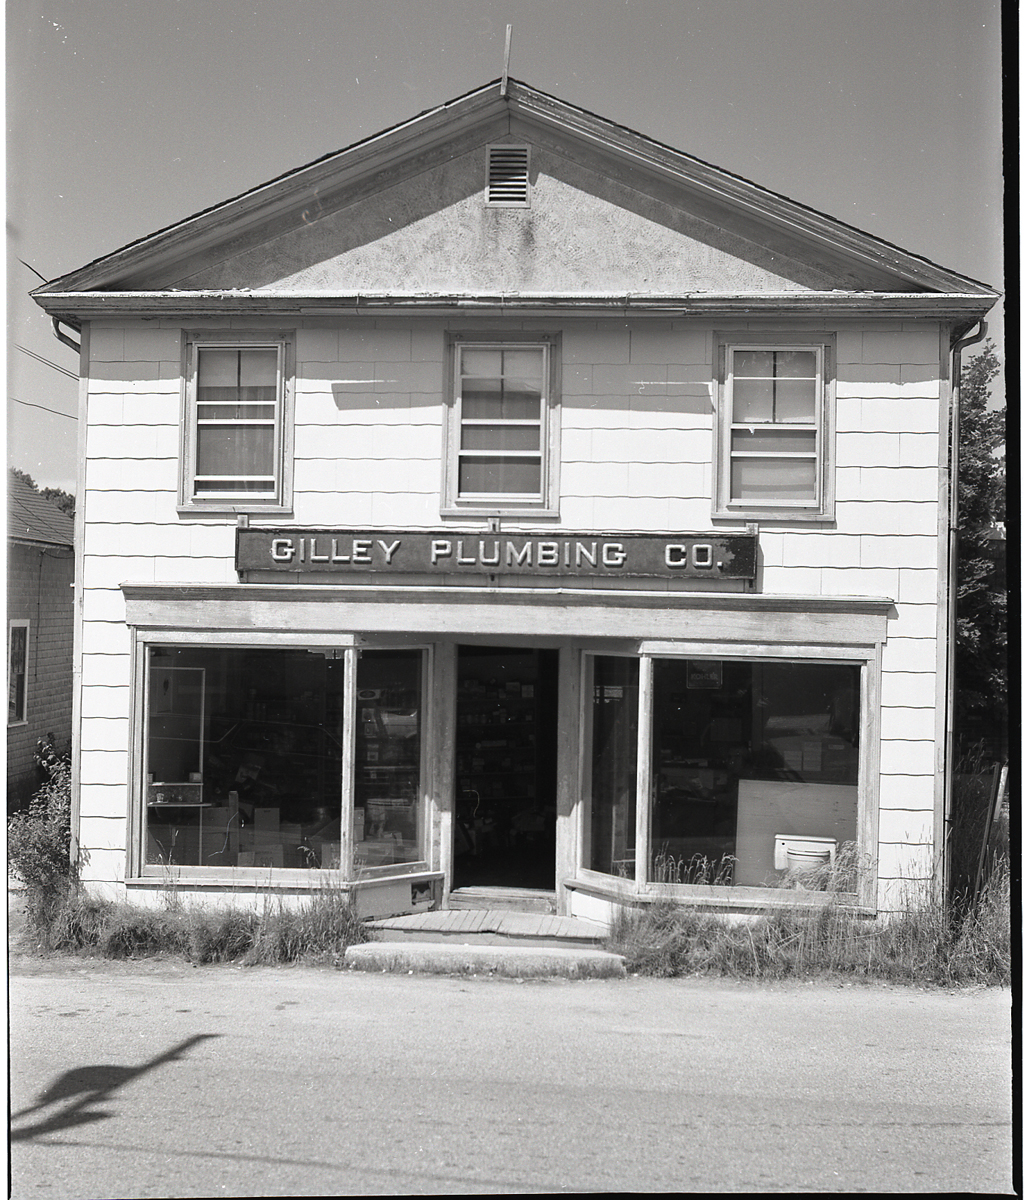 Gilley Plumbing Company, Clark Point Road, Southwest Harbor, Maine